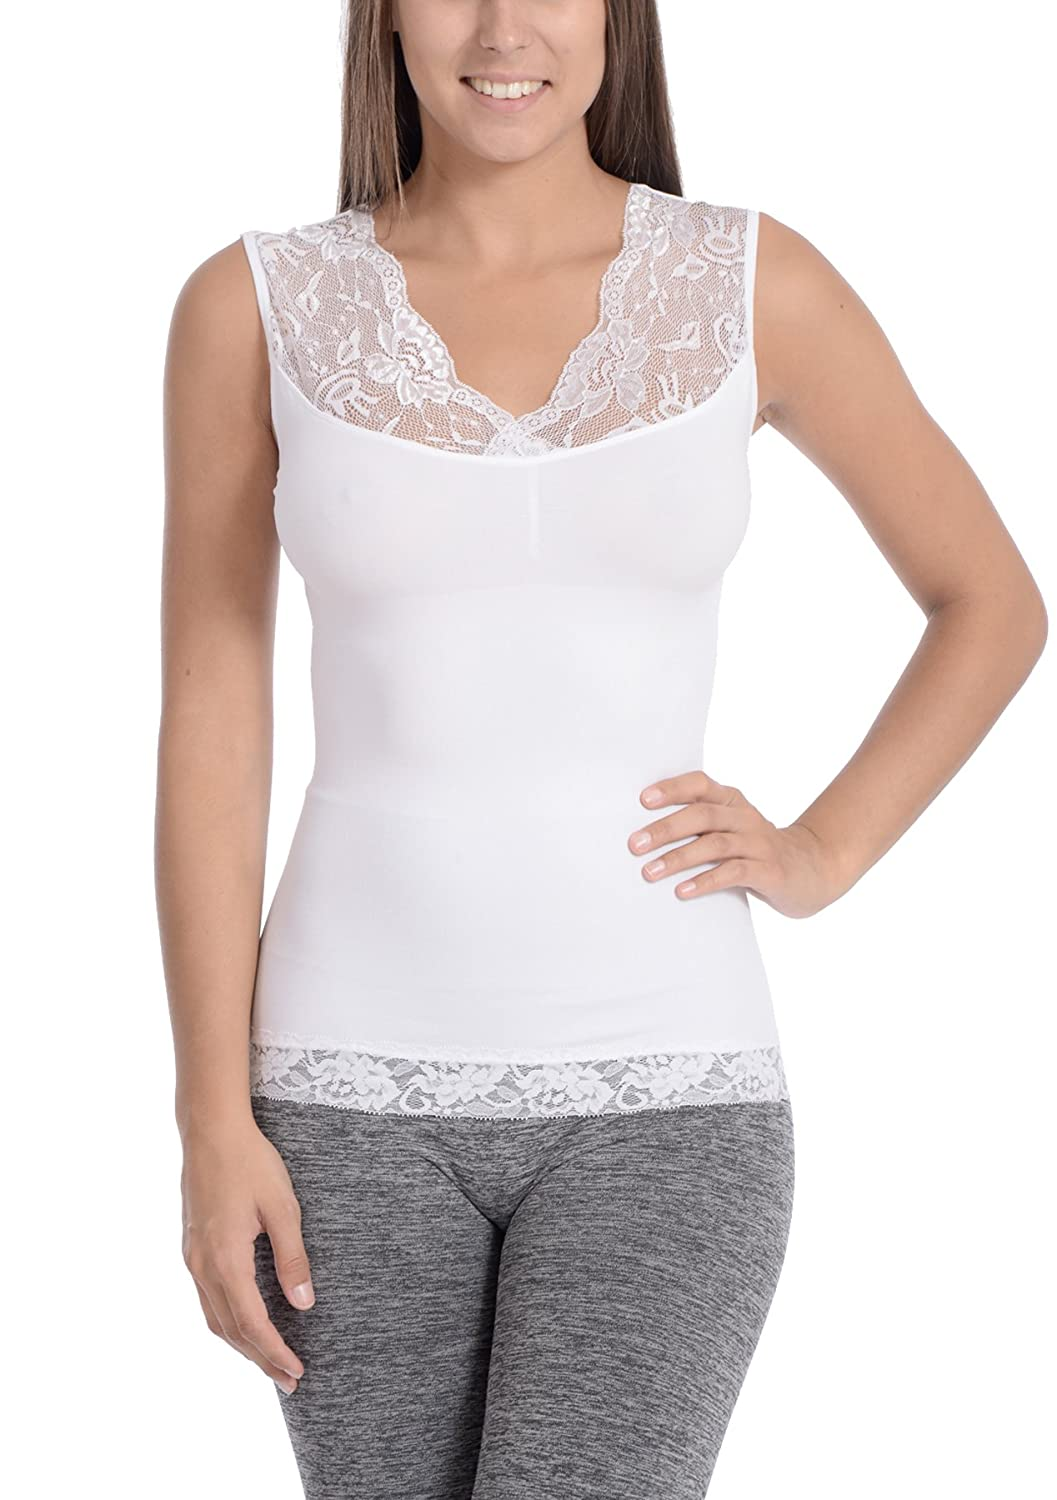 Body Beautiful Women's Shapewear Seamless V-Neck Shaping Cami with Lace Neck & Trim ROSC1_1124